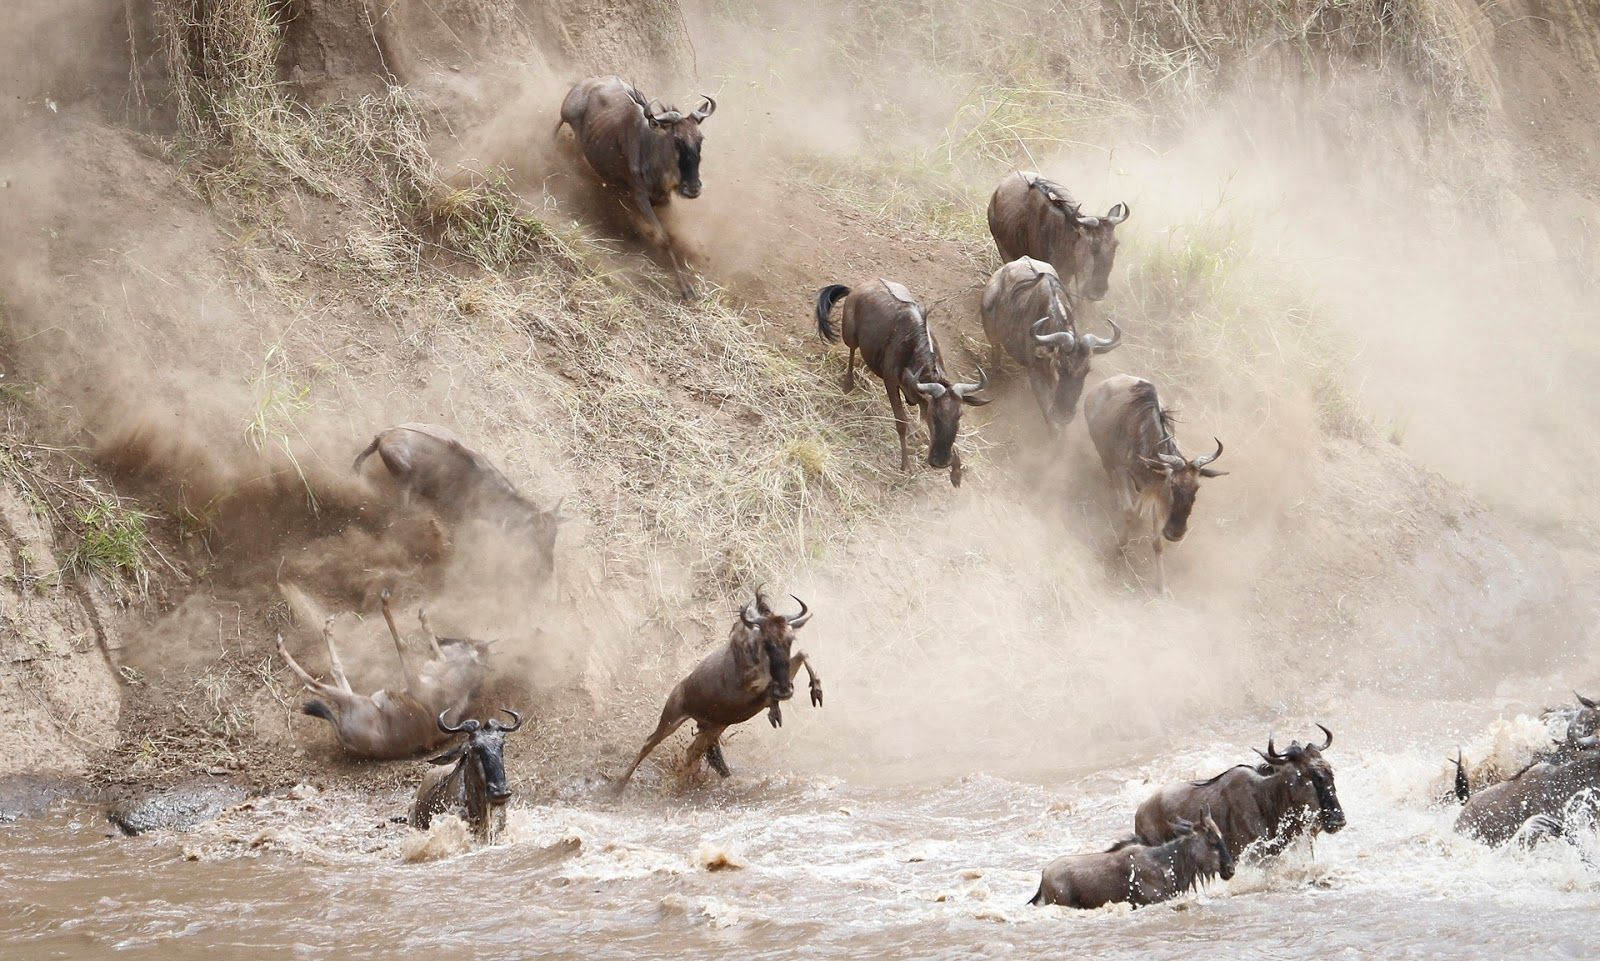 Wildebeest cross the Mara river during the great migration